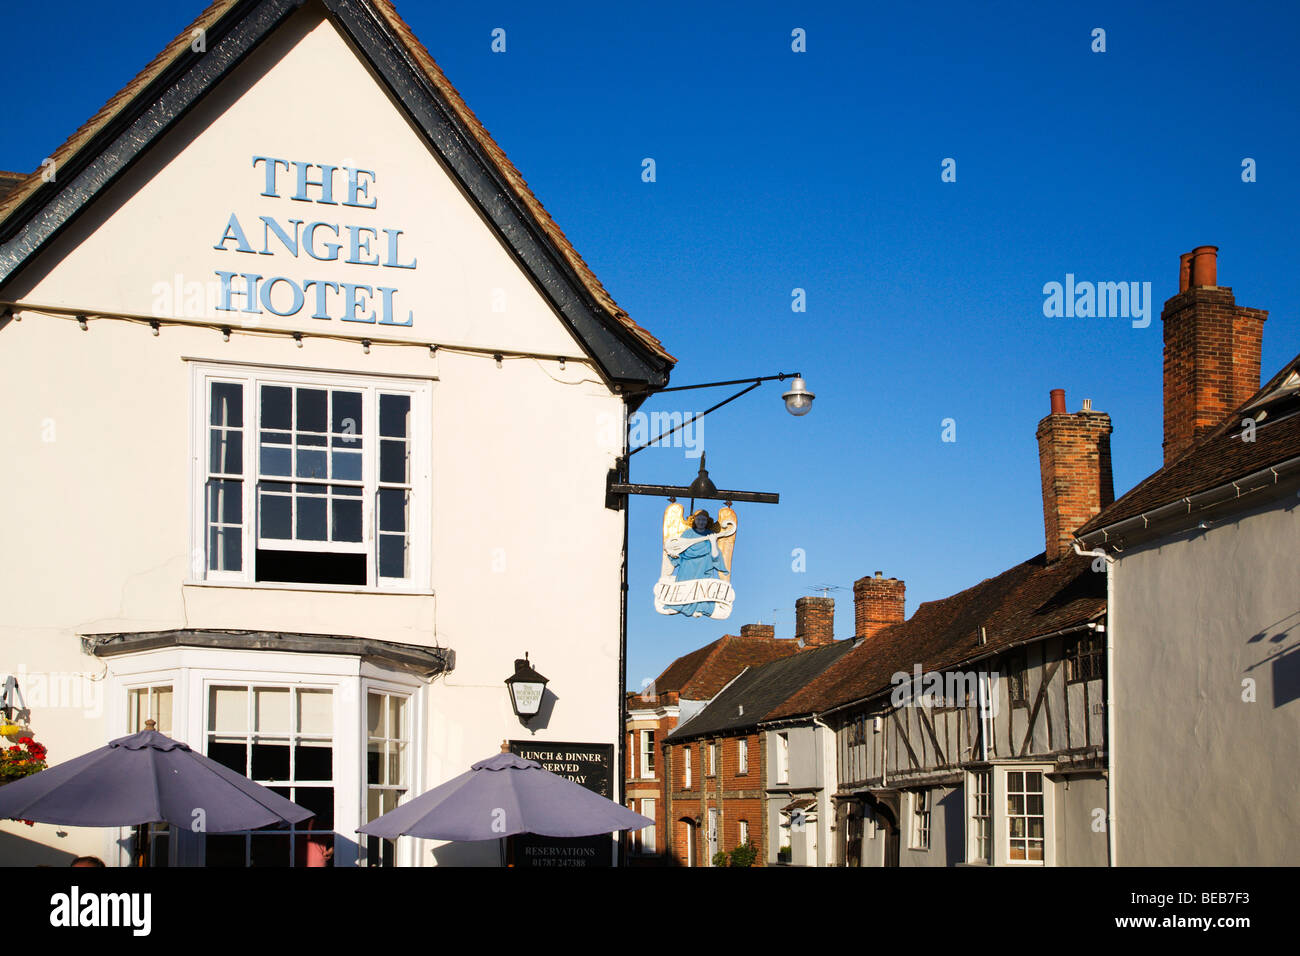 The Angel Hotel in the Market Place Lavenham Suffolk England Stock Photo